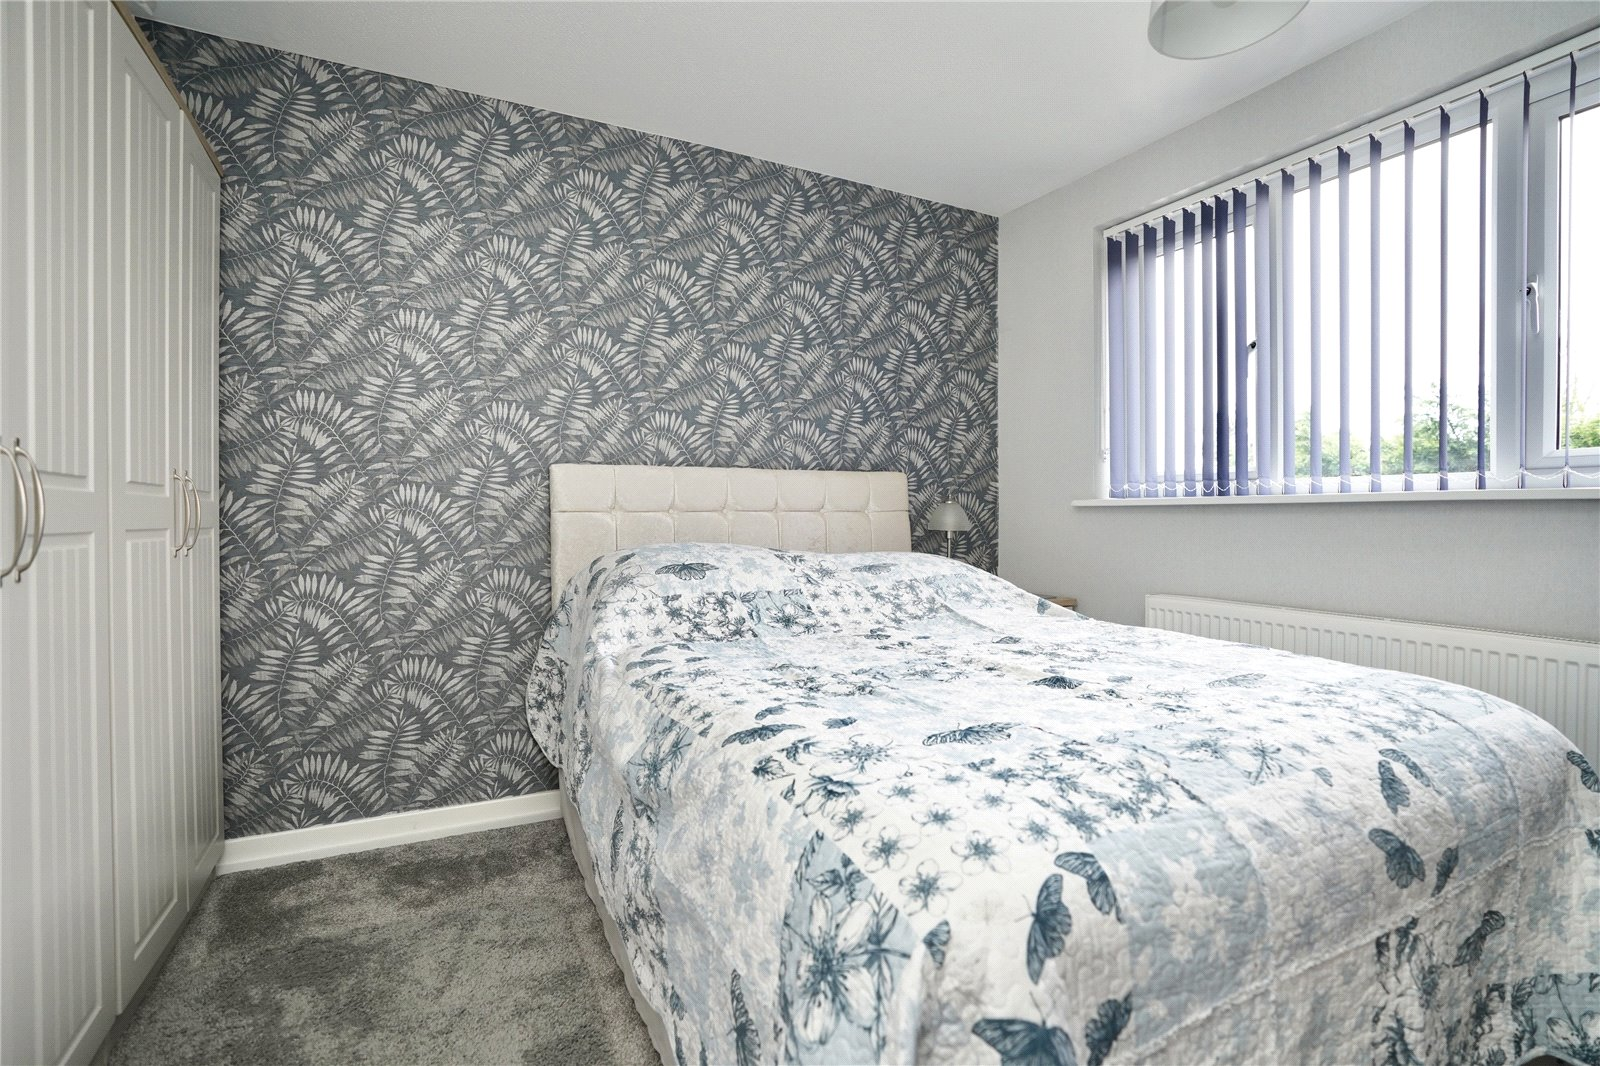 4 bed house for sale in Eaton Socon, PE19 8HU  - Property Image 10